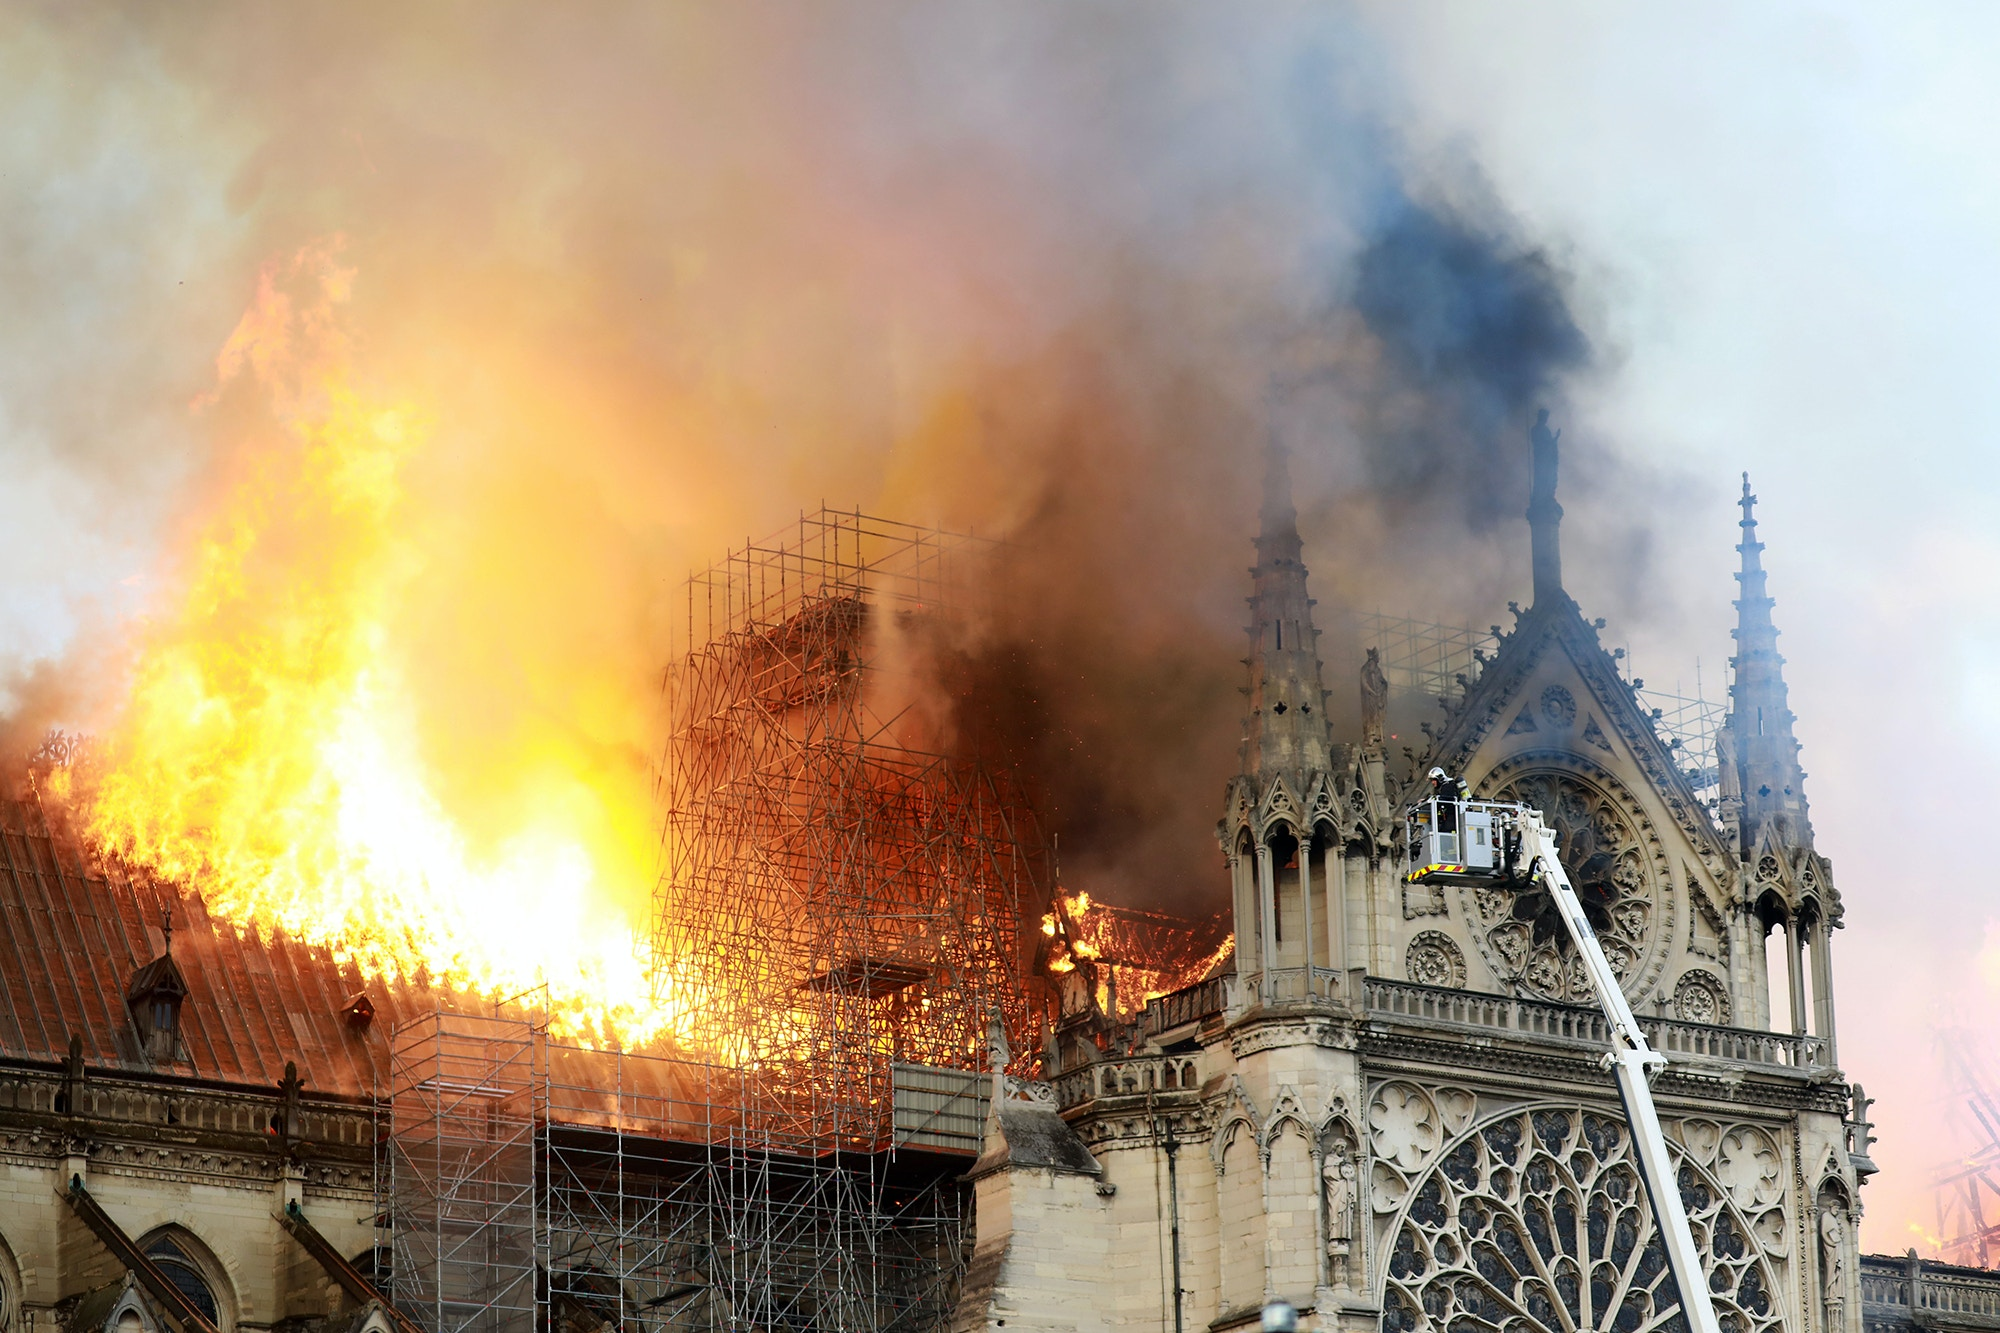 Firefights battling the blaze yesterday as it spread across the roof of Cathédrale Notre Dame de Paris